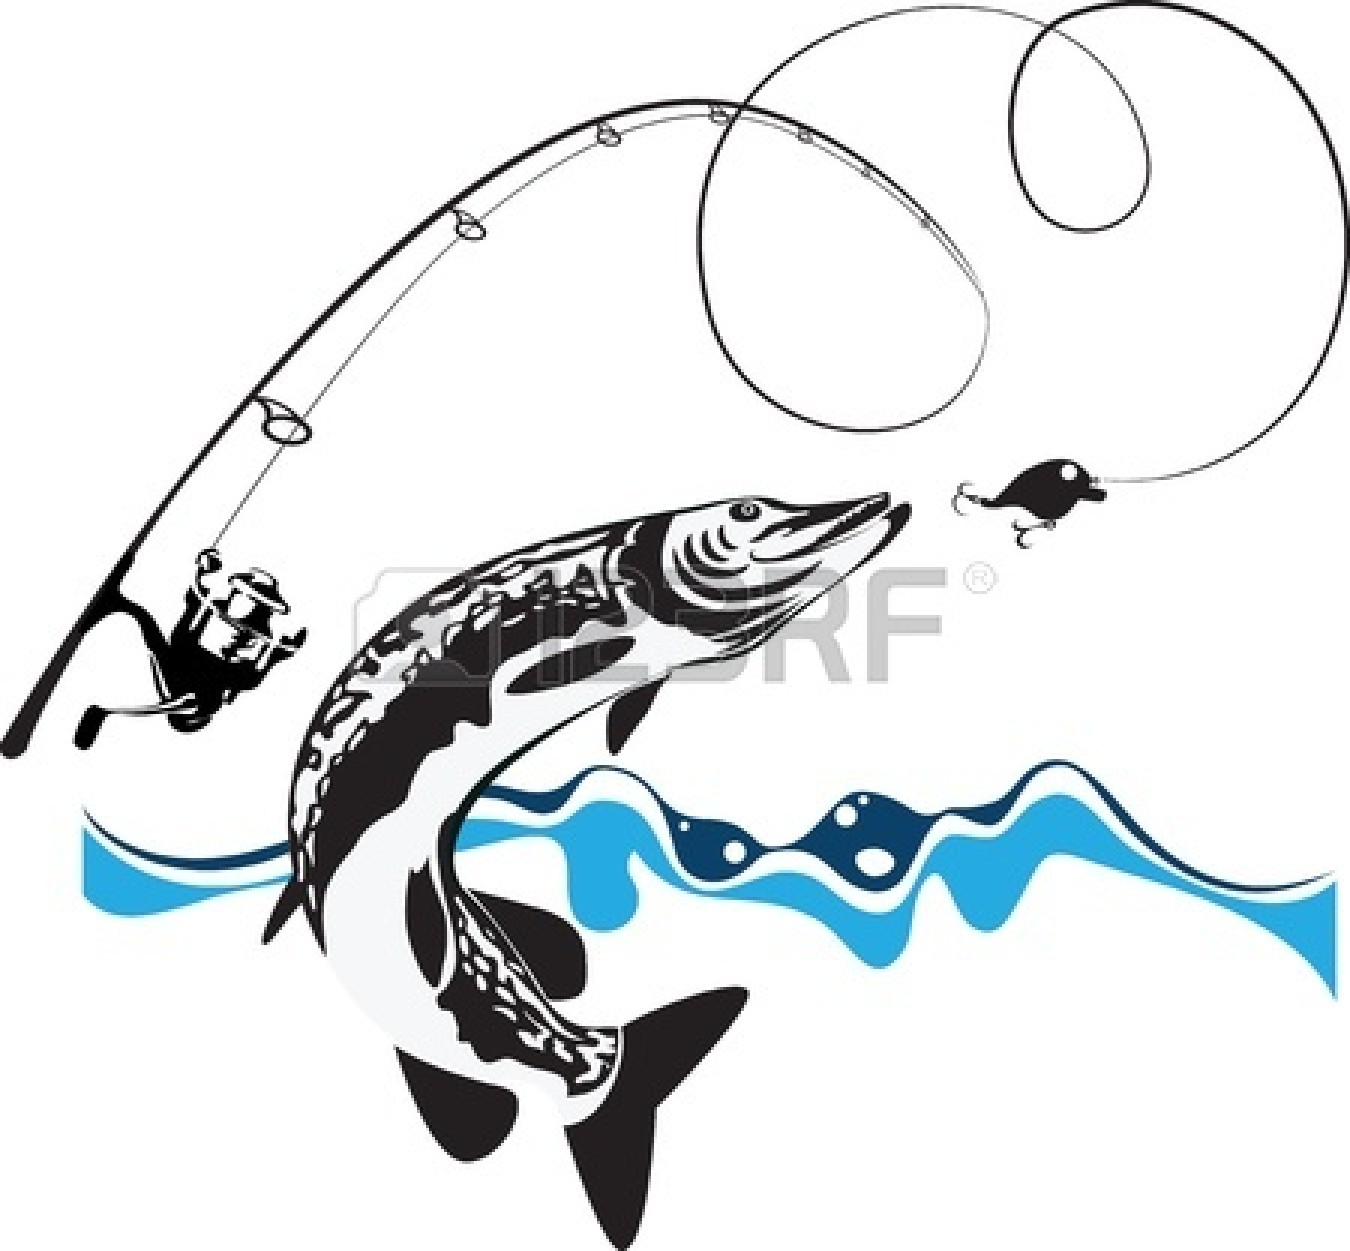 Silhouette at getdrawings com. Bass clipart fishing rod